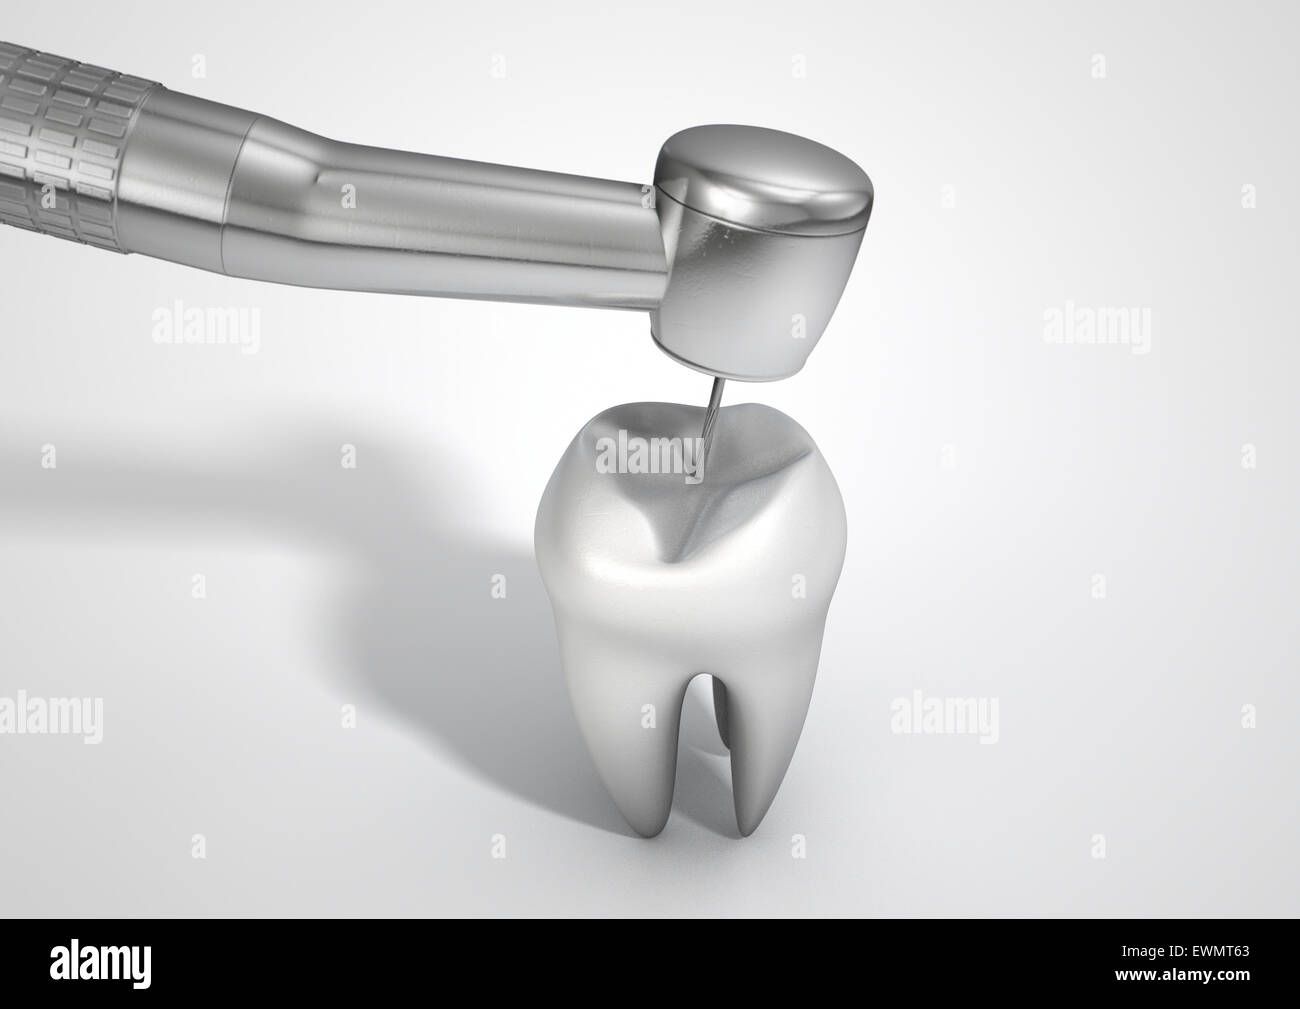 tooth drill stockfotos tooth drill bilder alamy. Black Bedroom Furniture Sets. Home Design Ideas